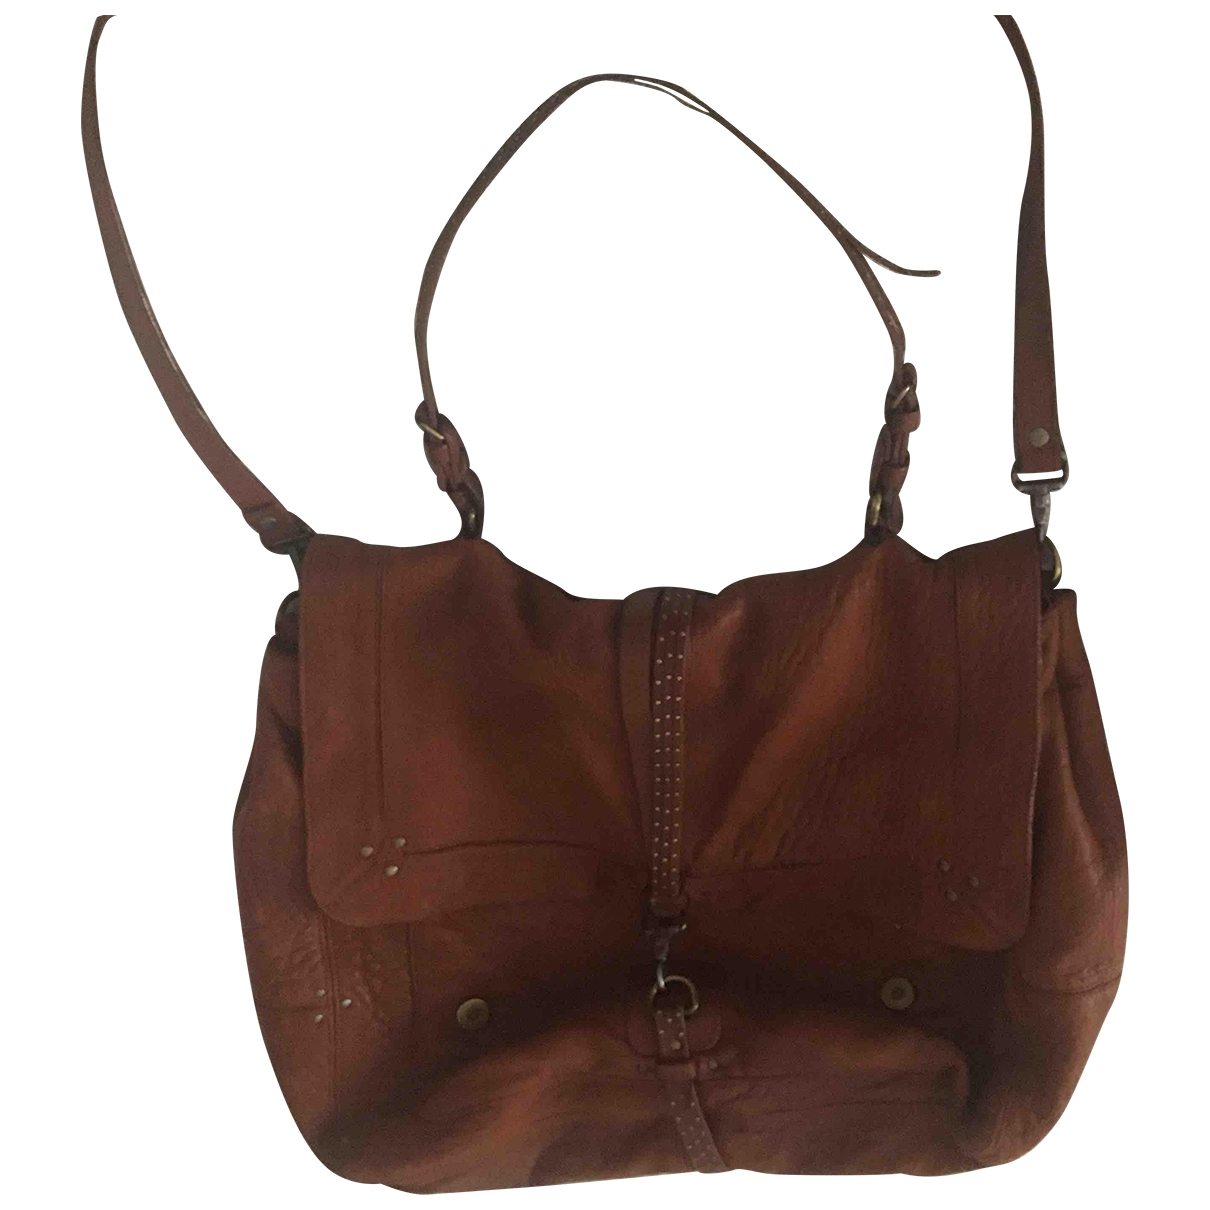 Jerome Dreyfuss \N Brown Leather handbag for Women \N